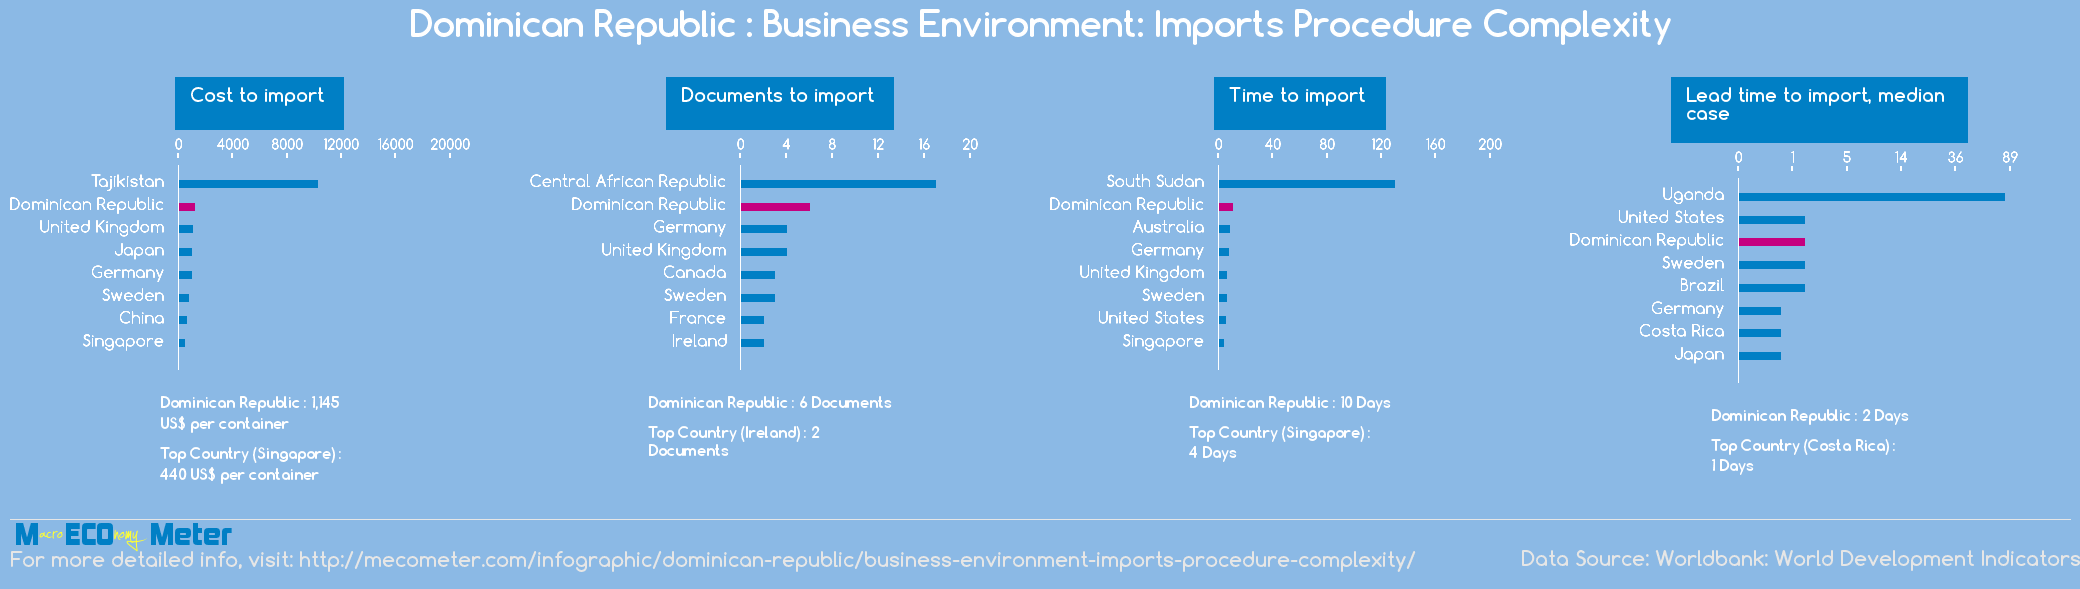 Dominican Republic : Business Environment: Imports Procedure Complexity